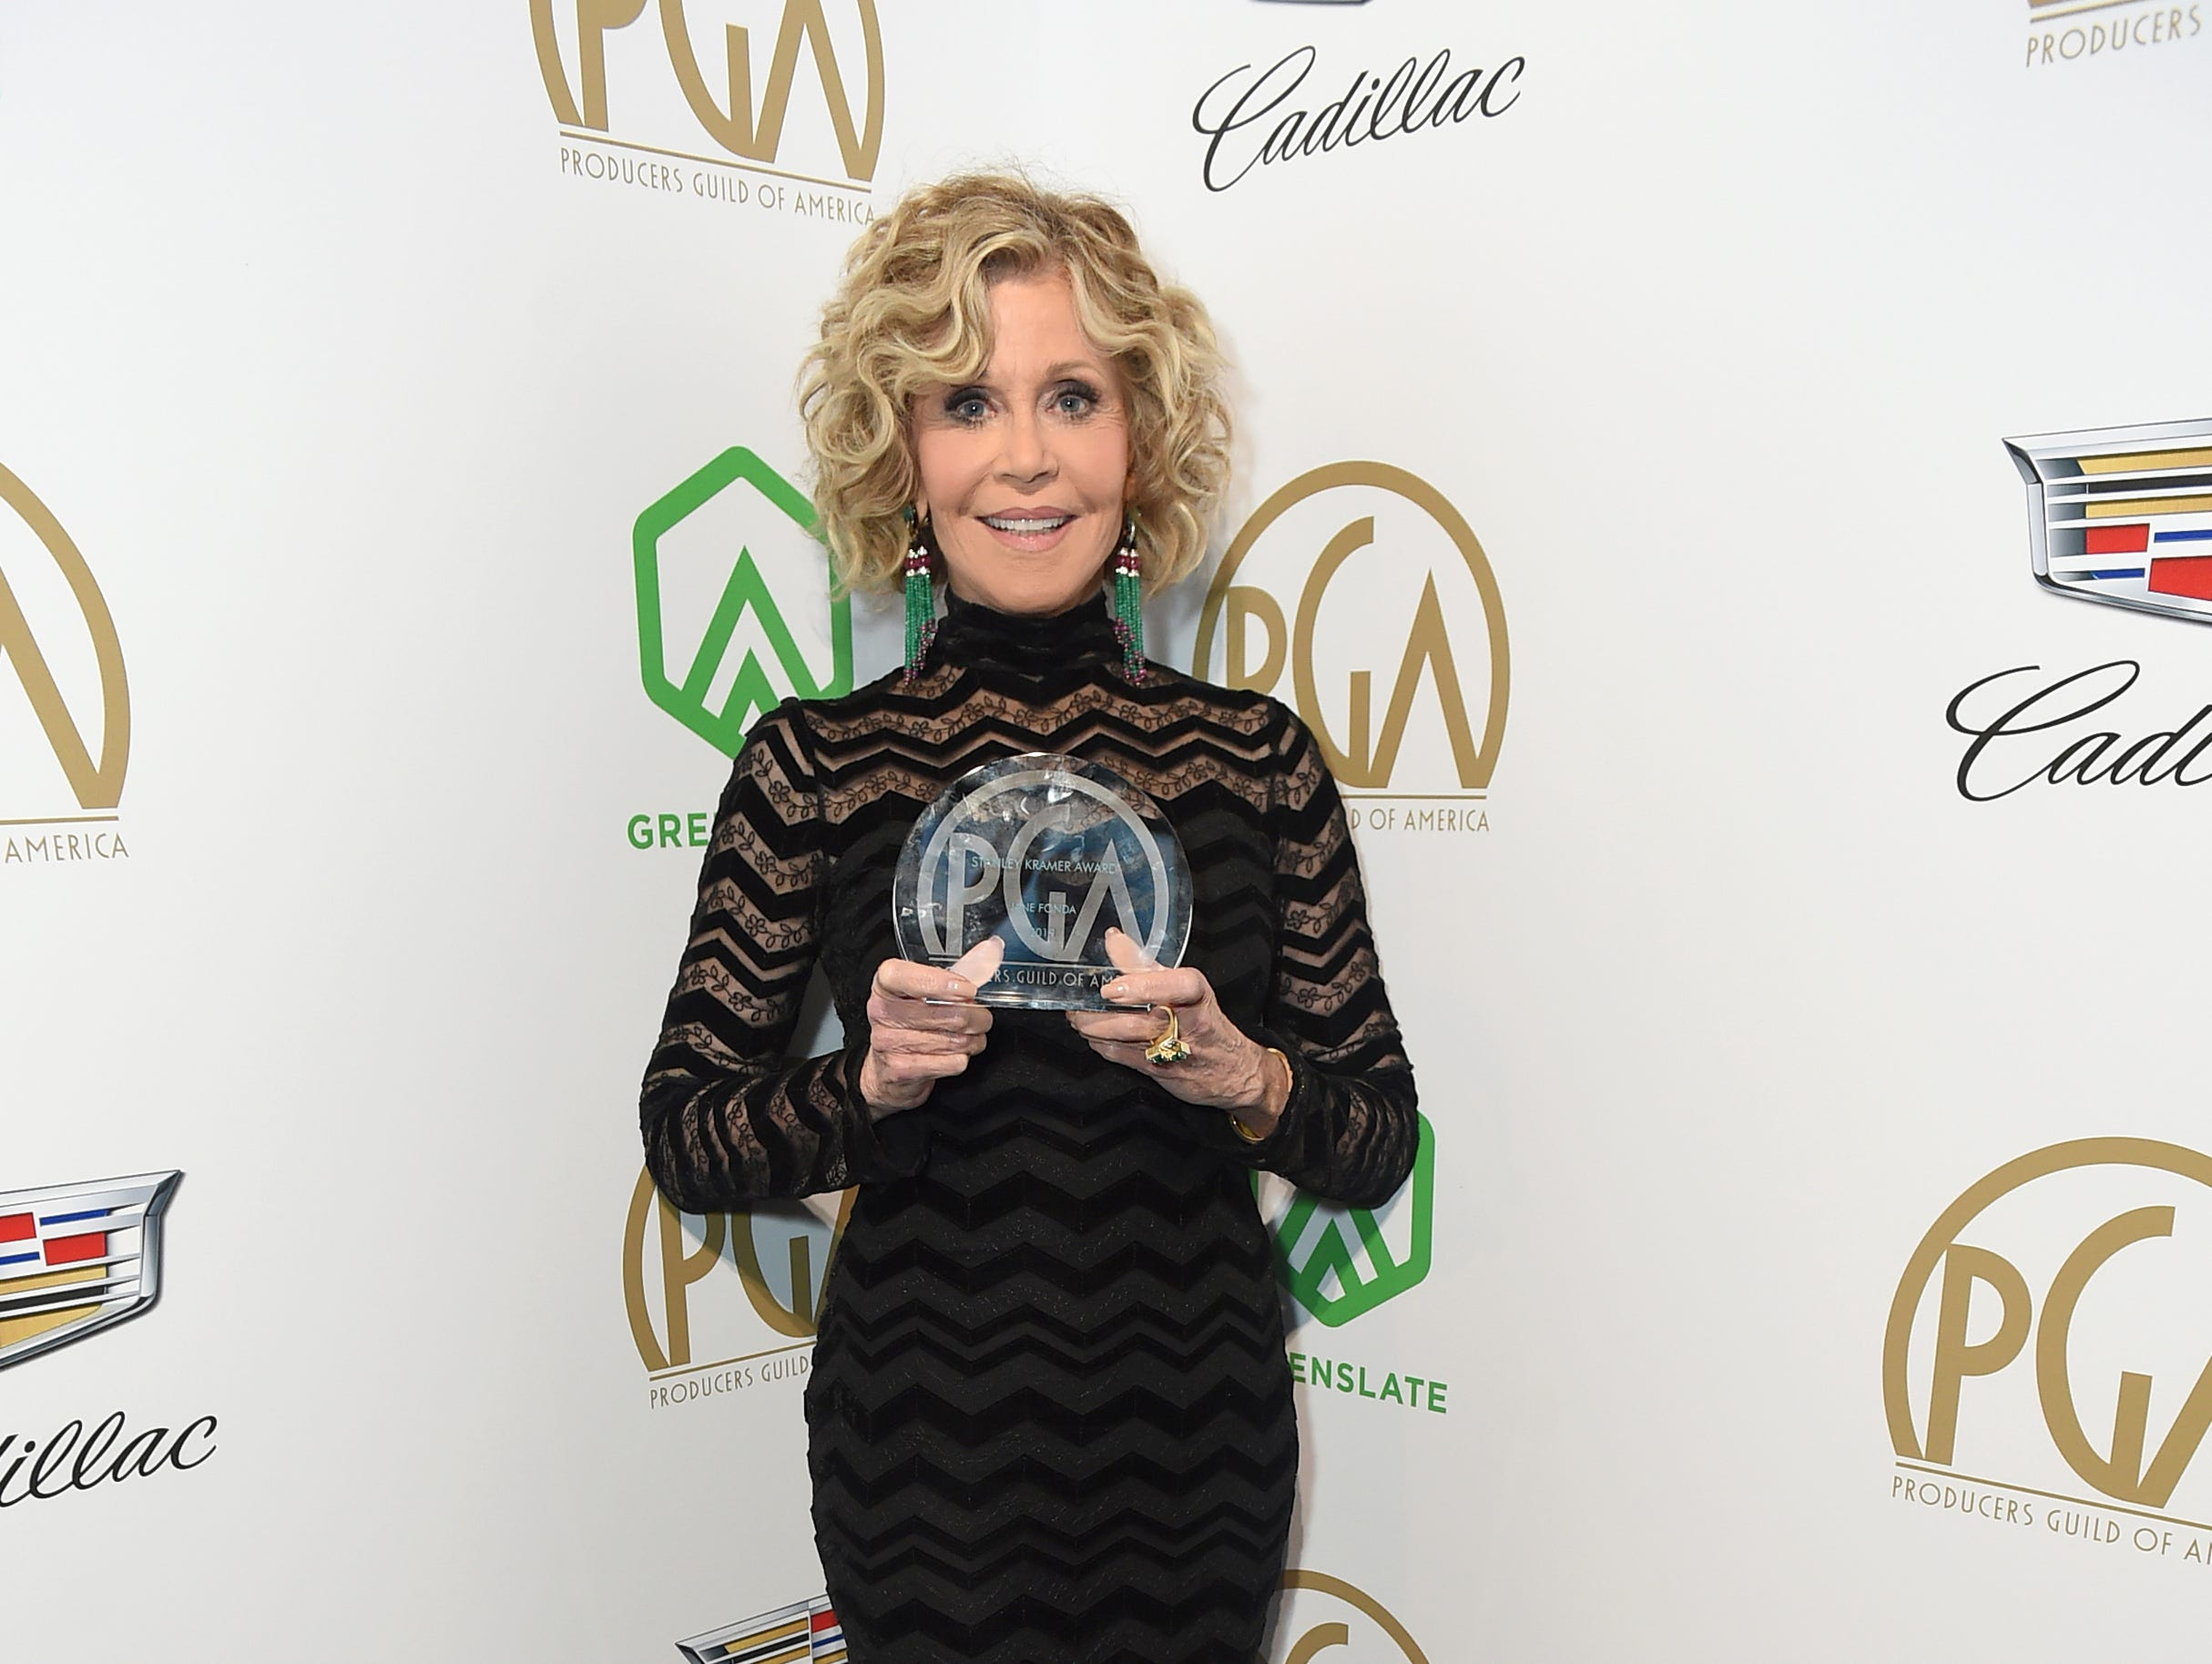 IMAGE DISTRIBUTED FOR PRODUCERS GUILD OF AMERICA - EXCLUSIVE - Jane Fonda poses with the Stanley Kramer Award at the 30th Producers Guild Awards presented by Cadillac at the Beverly Hilton on Saturday, Jan. 19, 2019, in Beverly Hills, Calif. (Photo by Jordan Strauss/Invision for Producers Guild of America/AP Images) ORG XMIT: CALB155